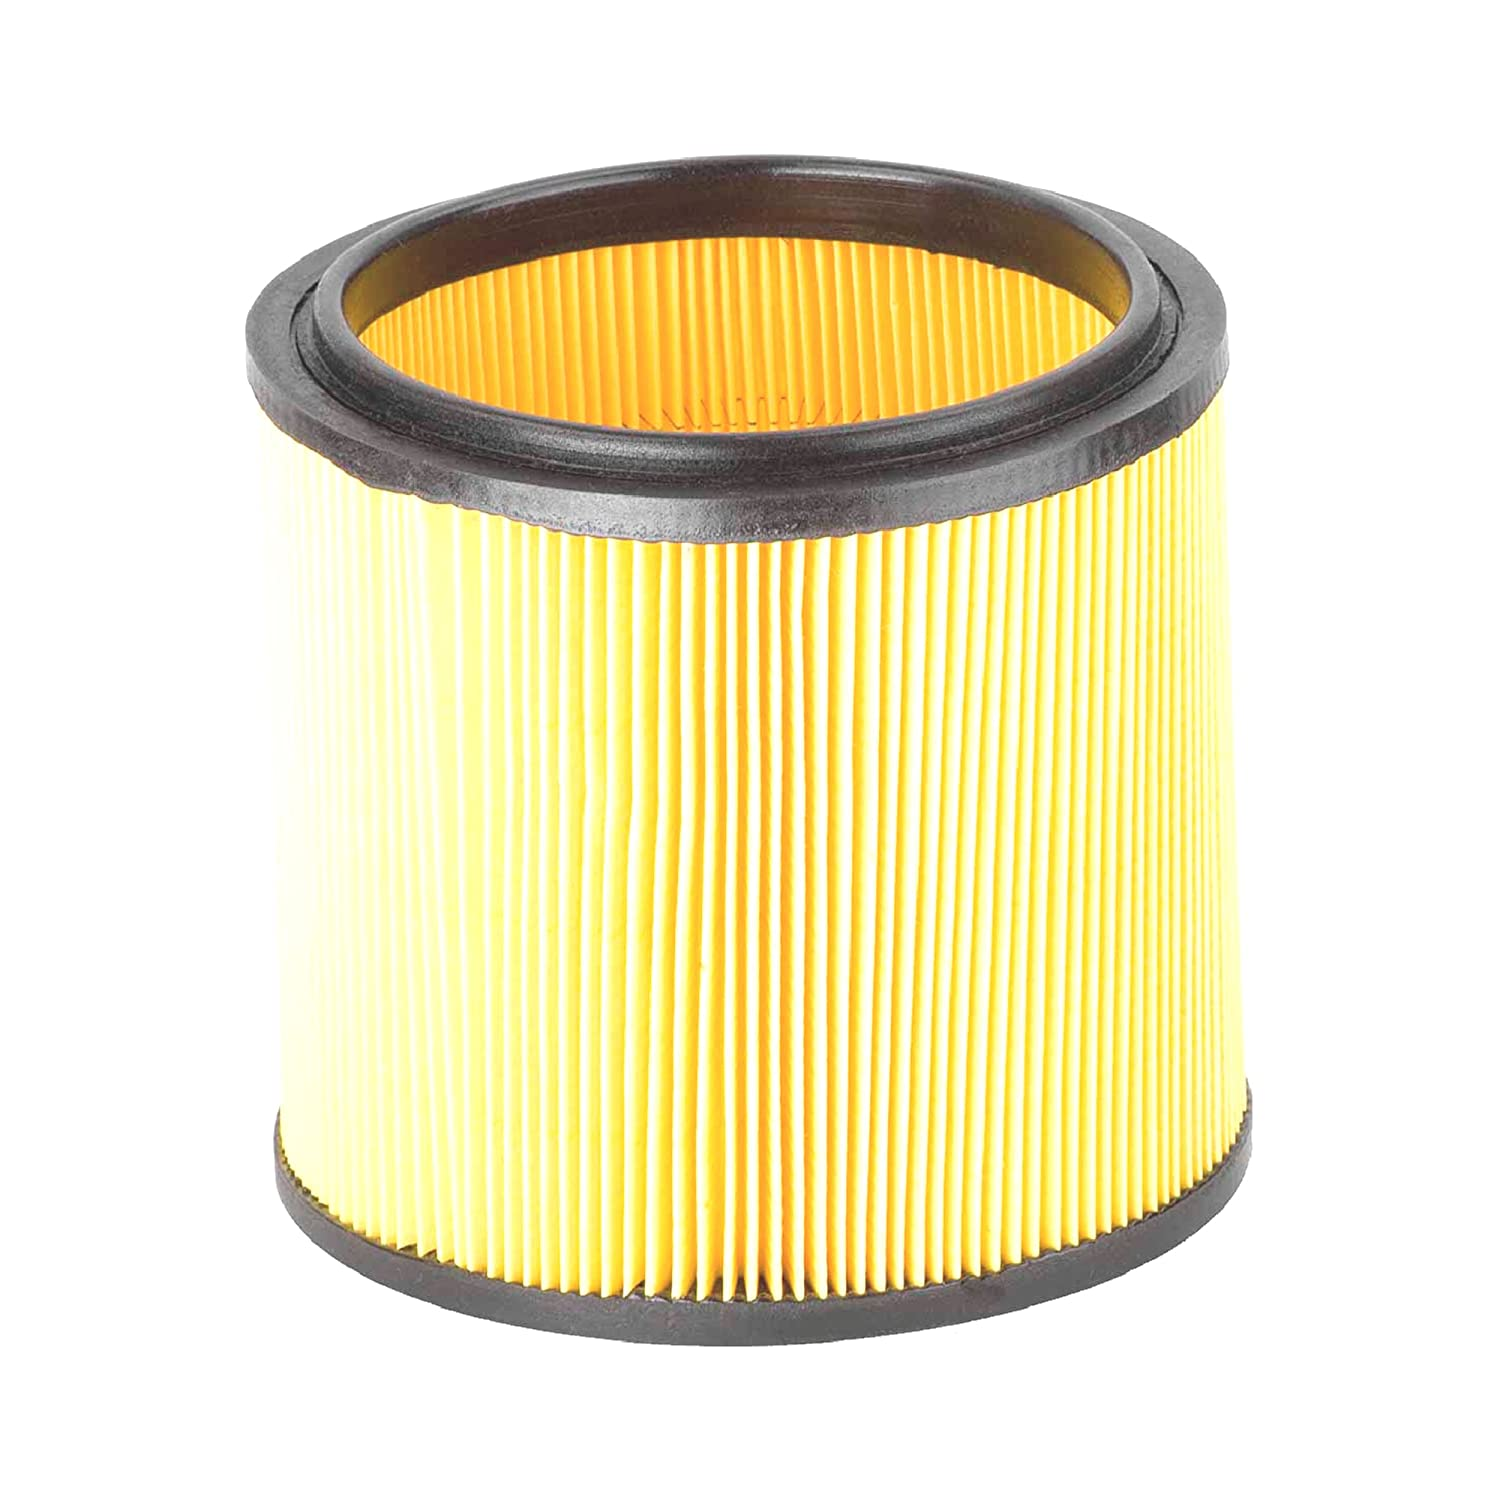 Vacmaster Standard Cartidge Filter & Retainer, VCFS - Replacement ...